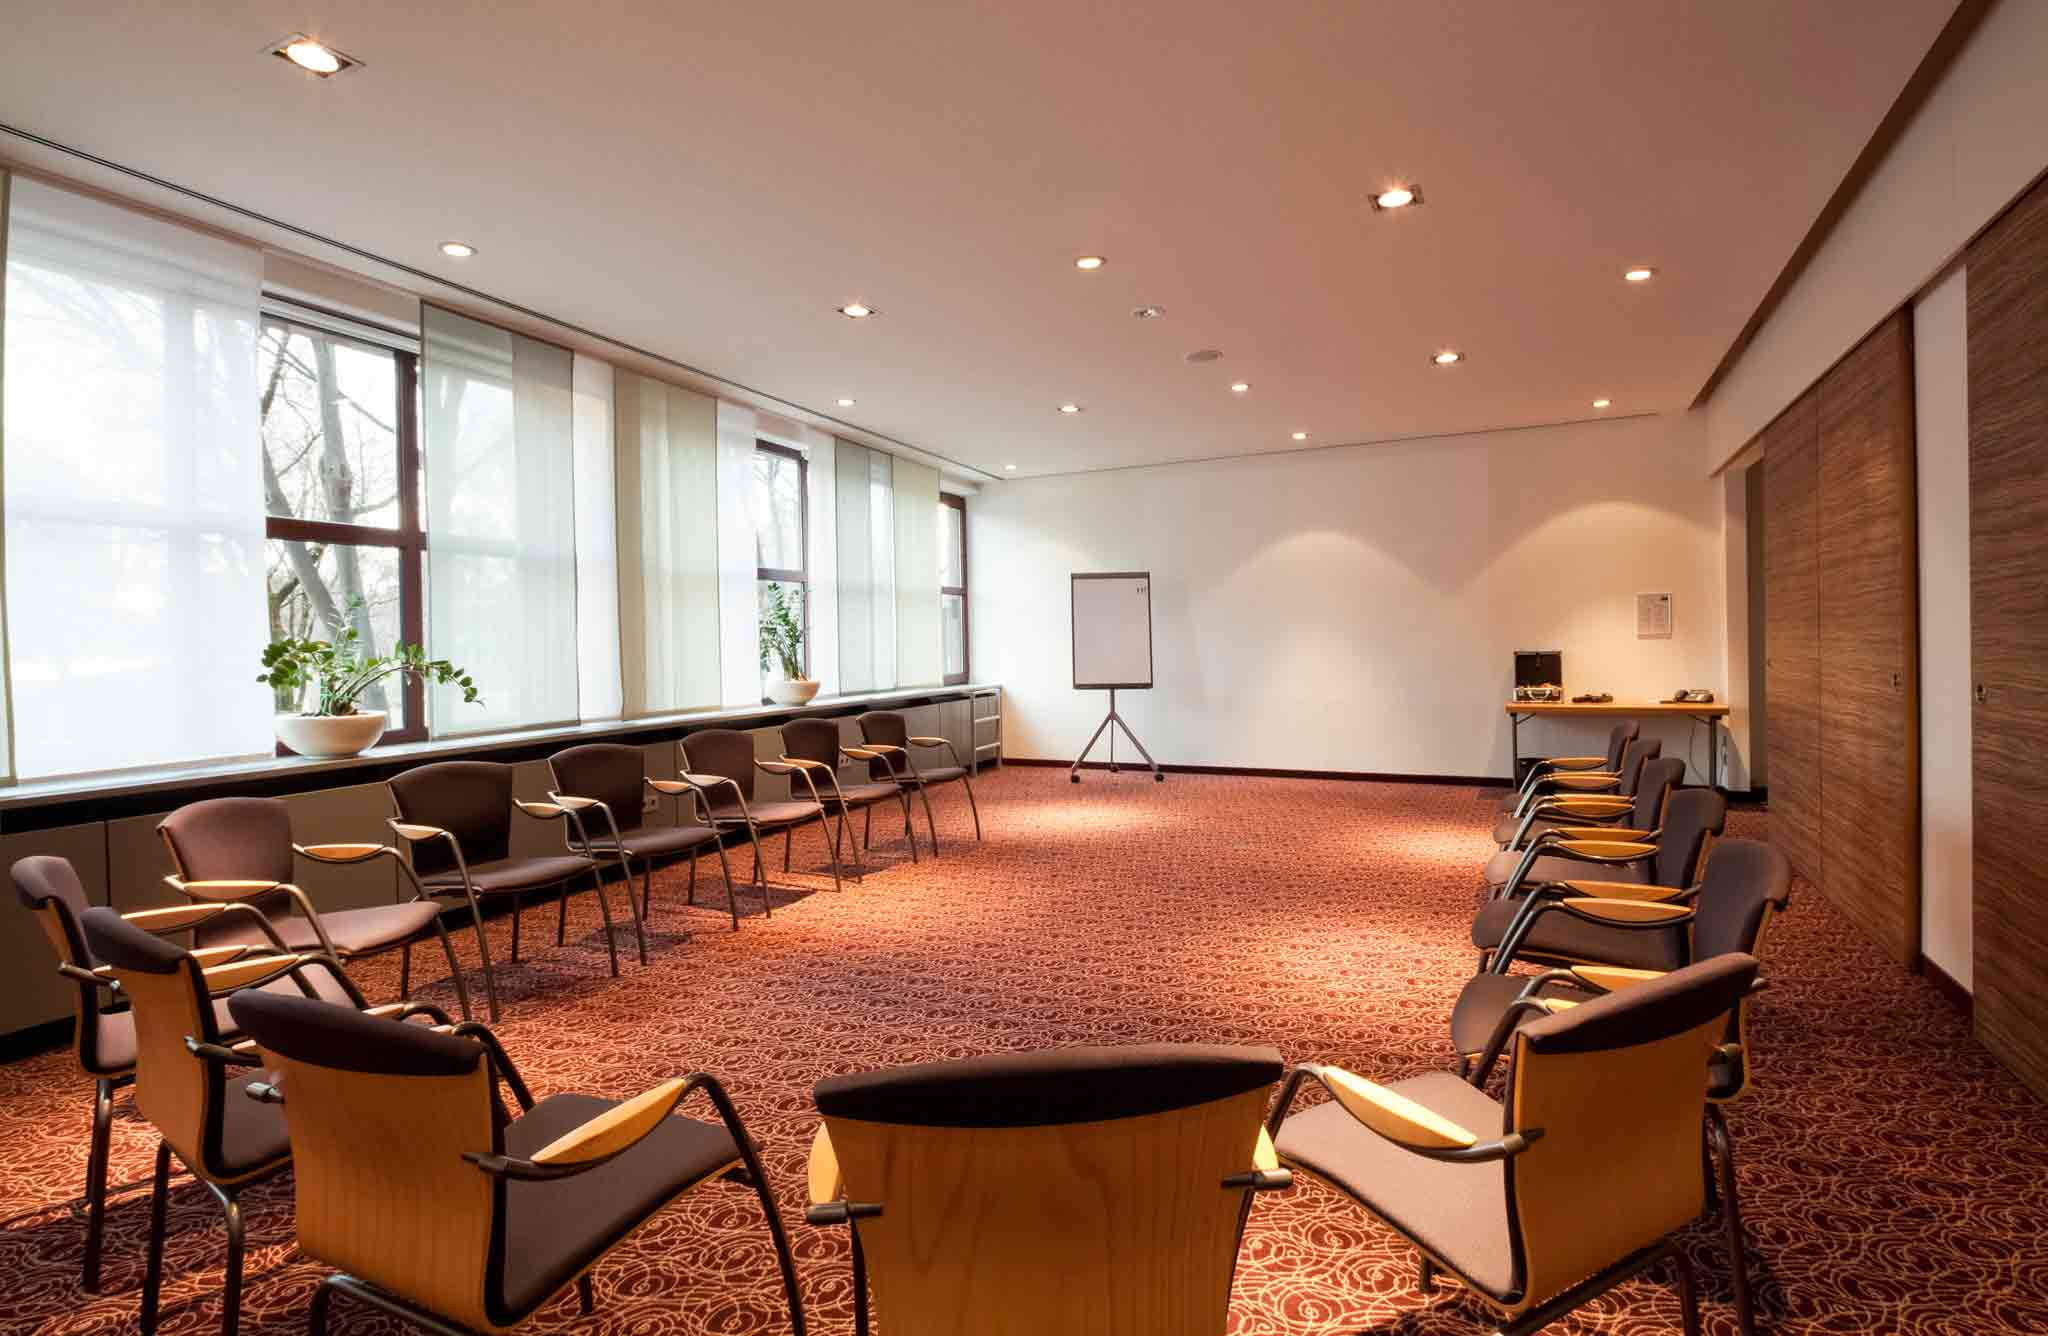 Mercure Hotel Orbis München Süd Meeting room